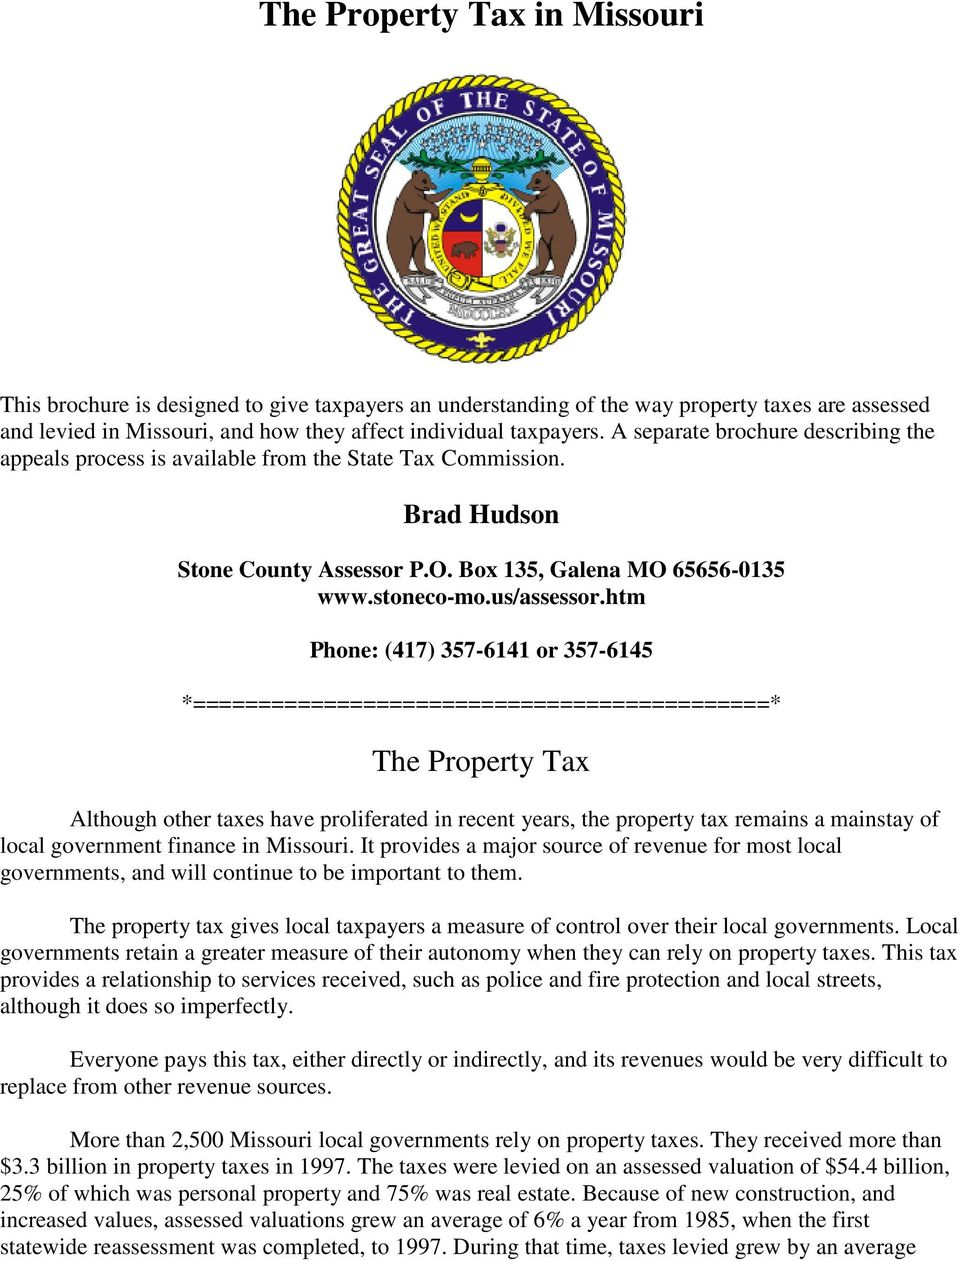 htm Phone: (417) 357-6141 or 357-6145 *============================================* The Property Tax Although other taxes have proliferated in recent years, the property tax remains a mainstay of